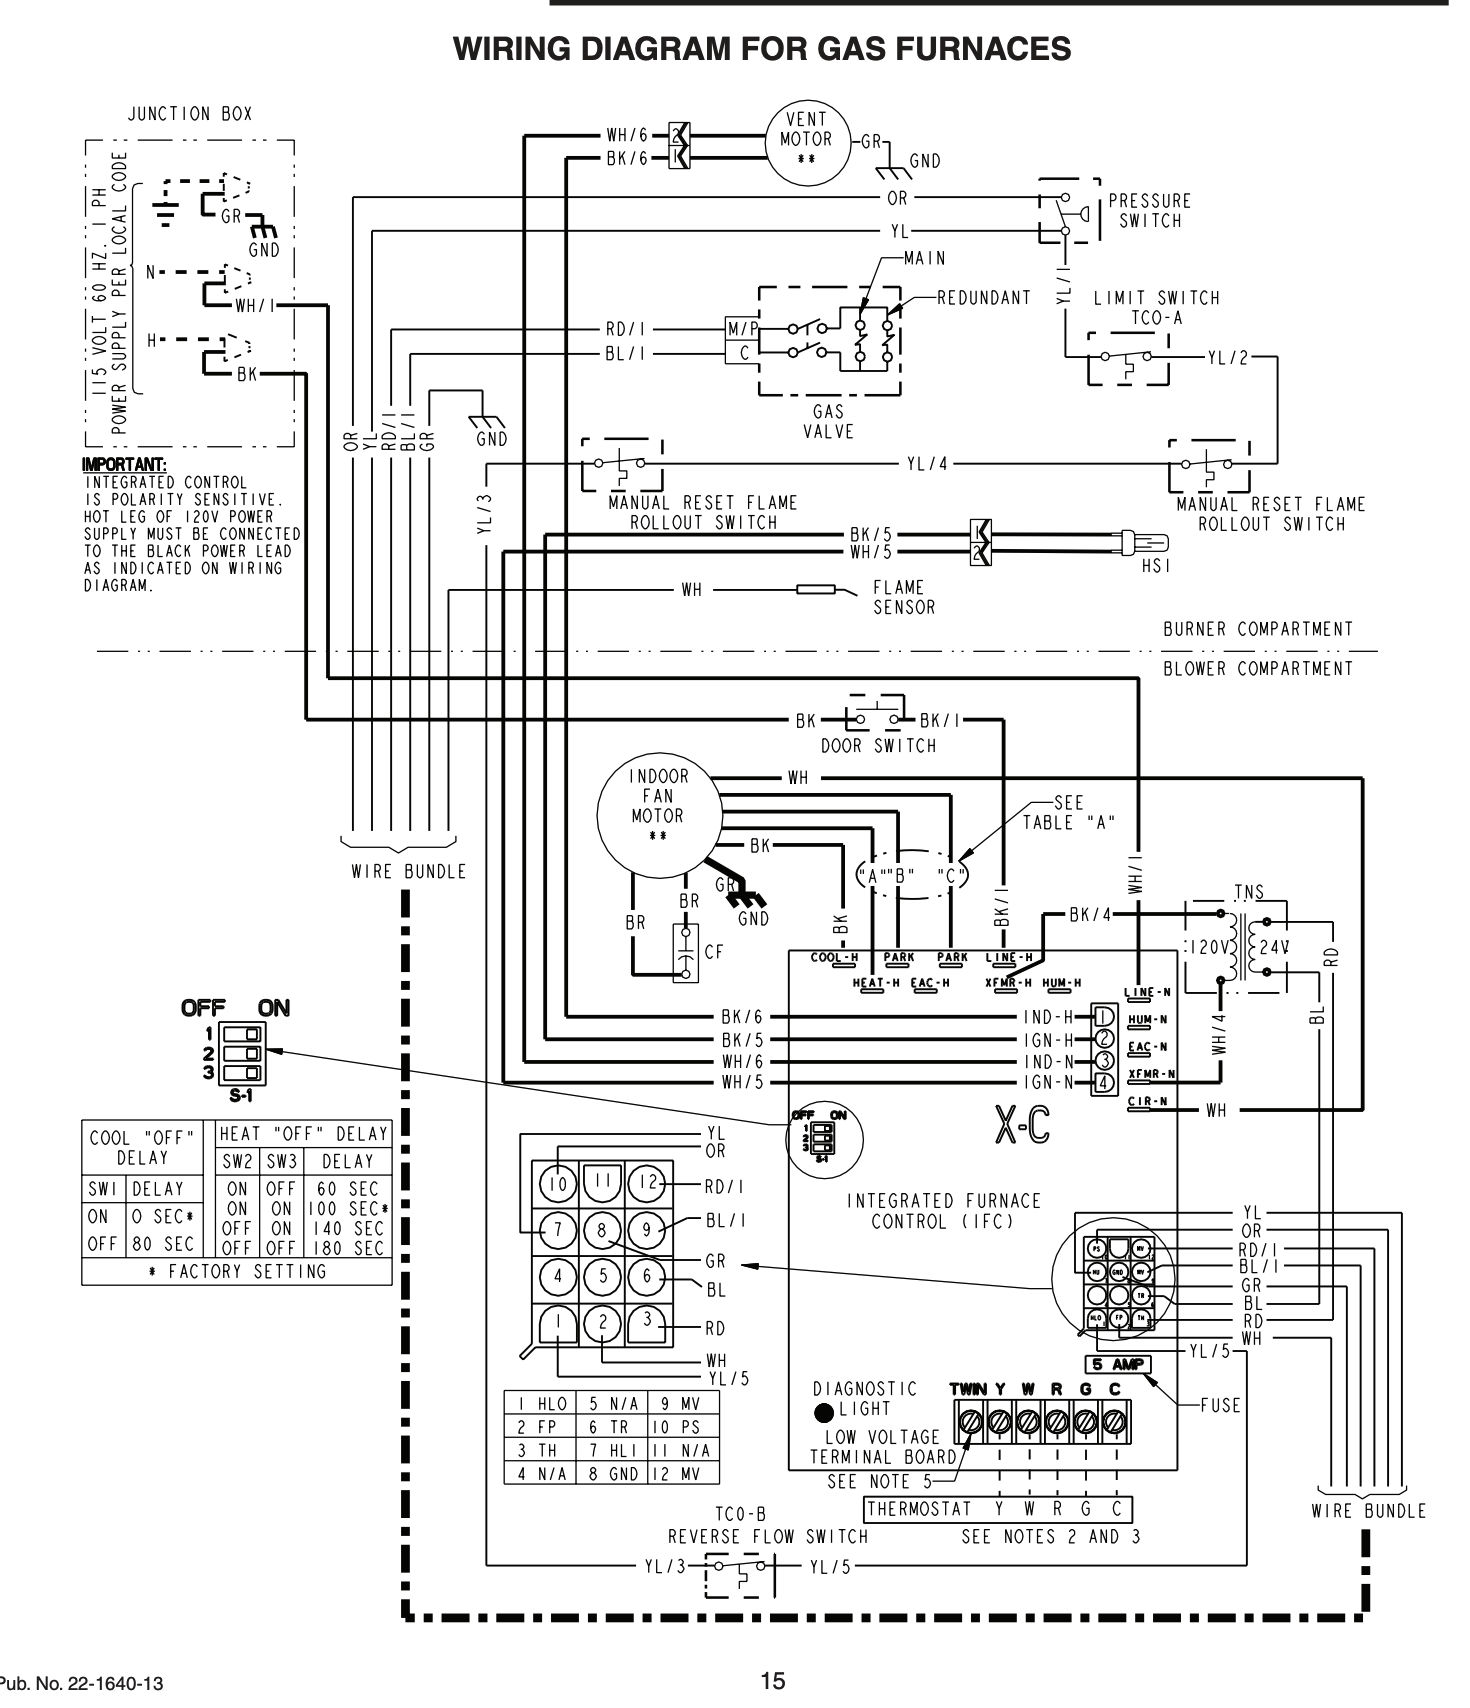 hight resolution of heat nordyne diagram wiring pump modlegqf090100324 wiring diagram nordyne heat pump wiring diagram